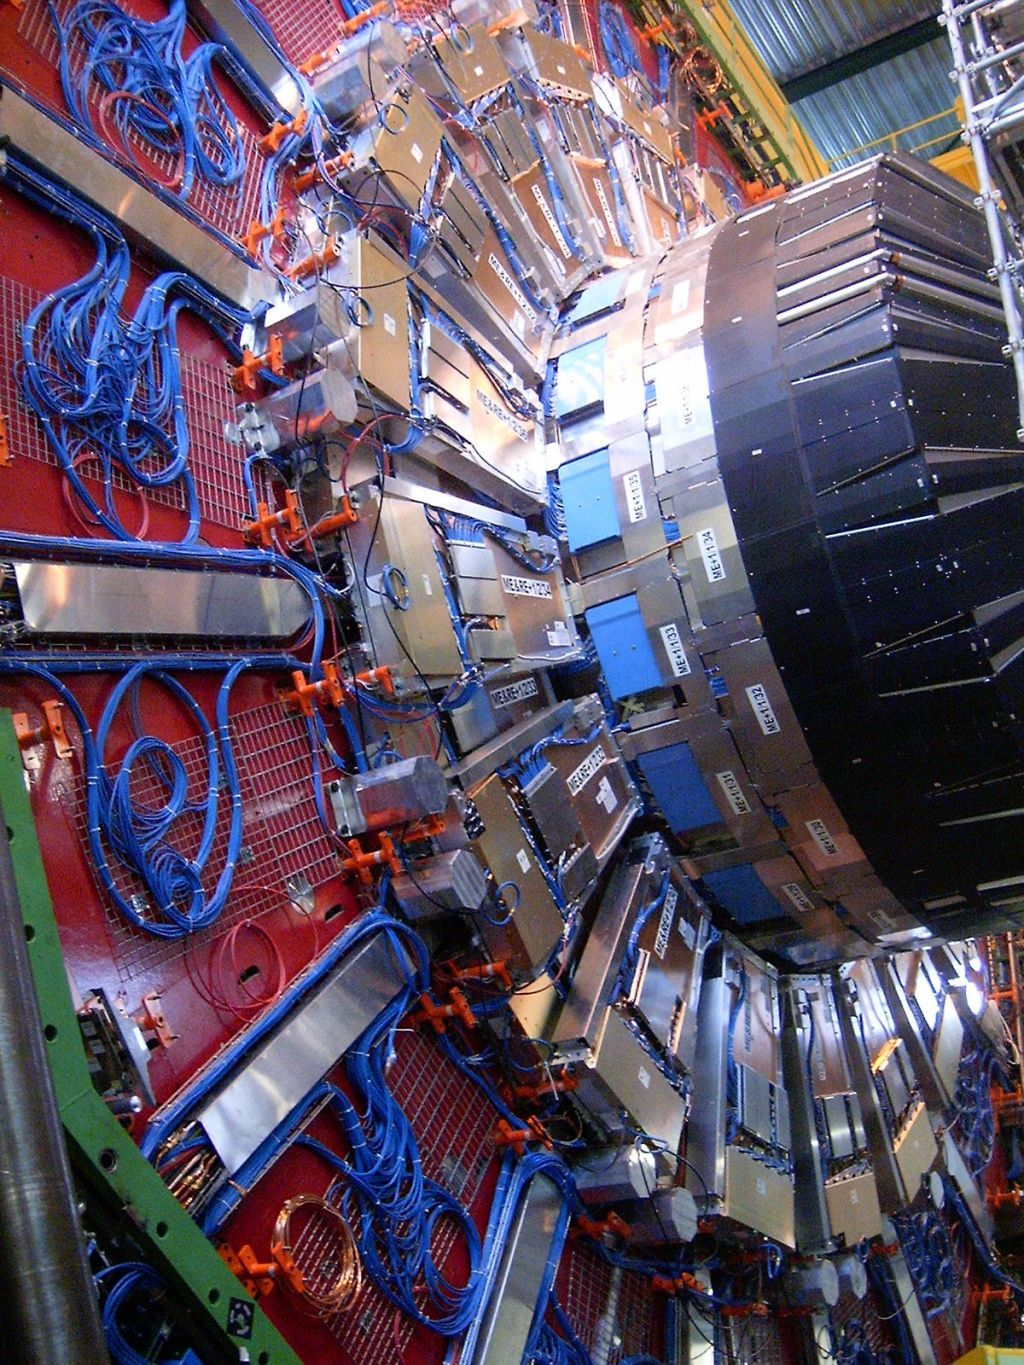 The Large Hadron Collider is About to Fire Up Again